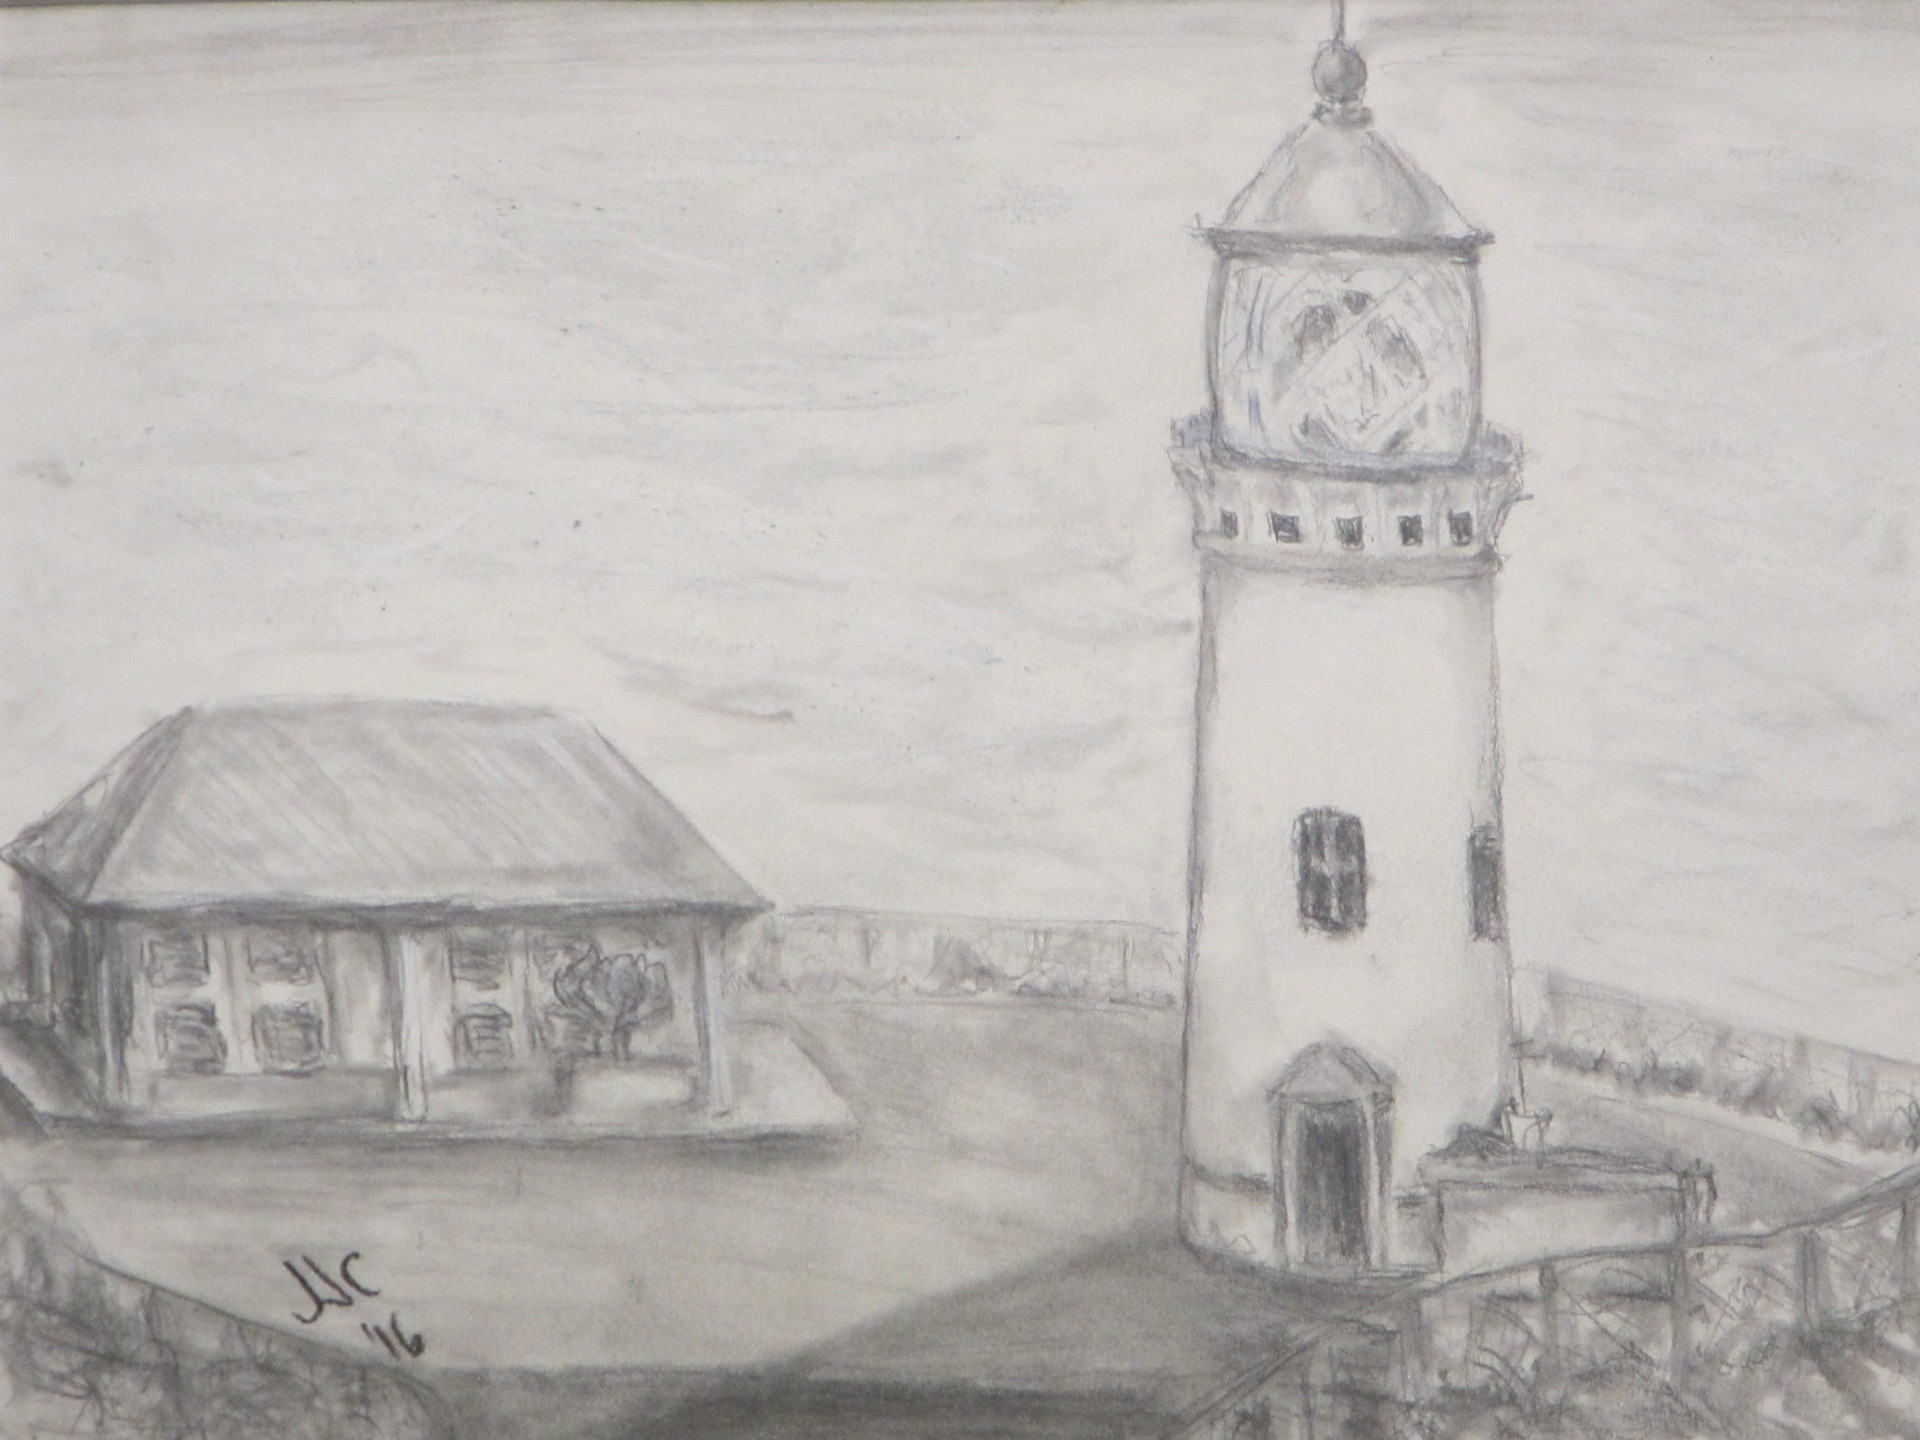 Pencil drawing of the Kilauea Lighthouse on the north shore of Kauai.